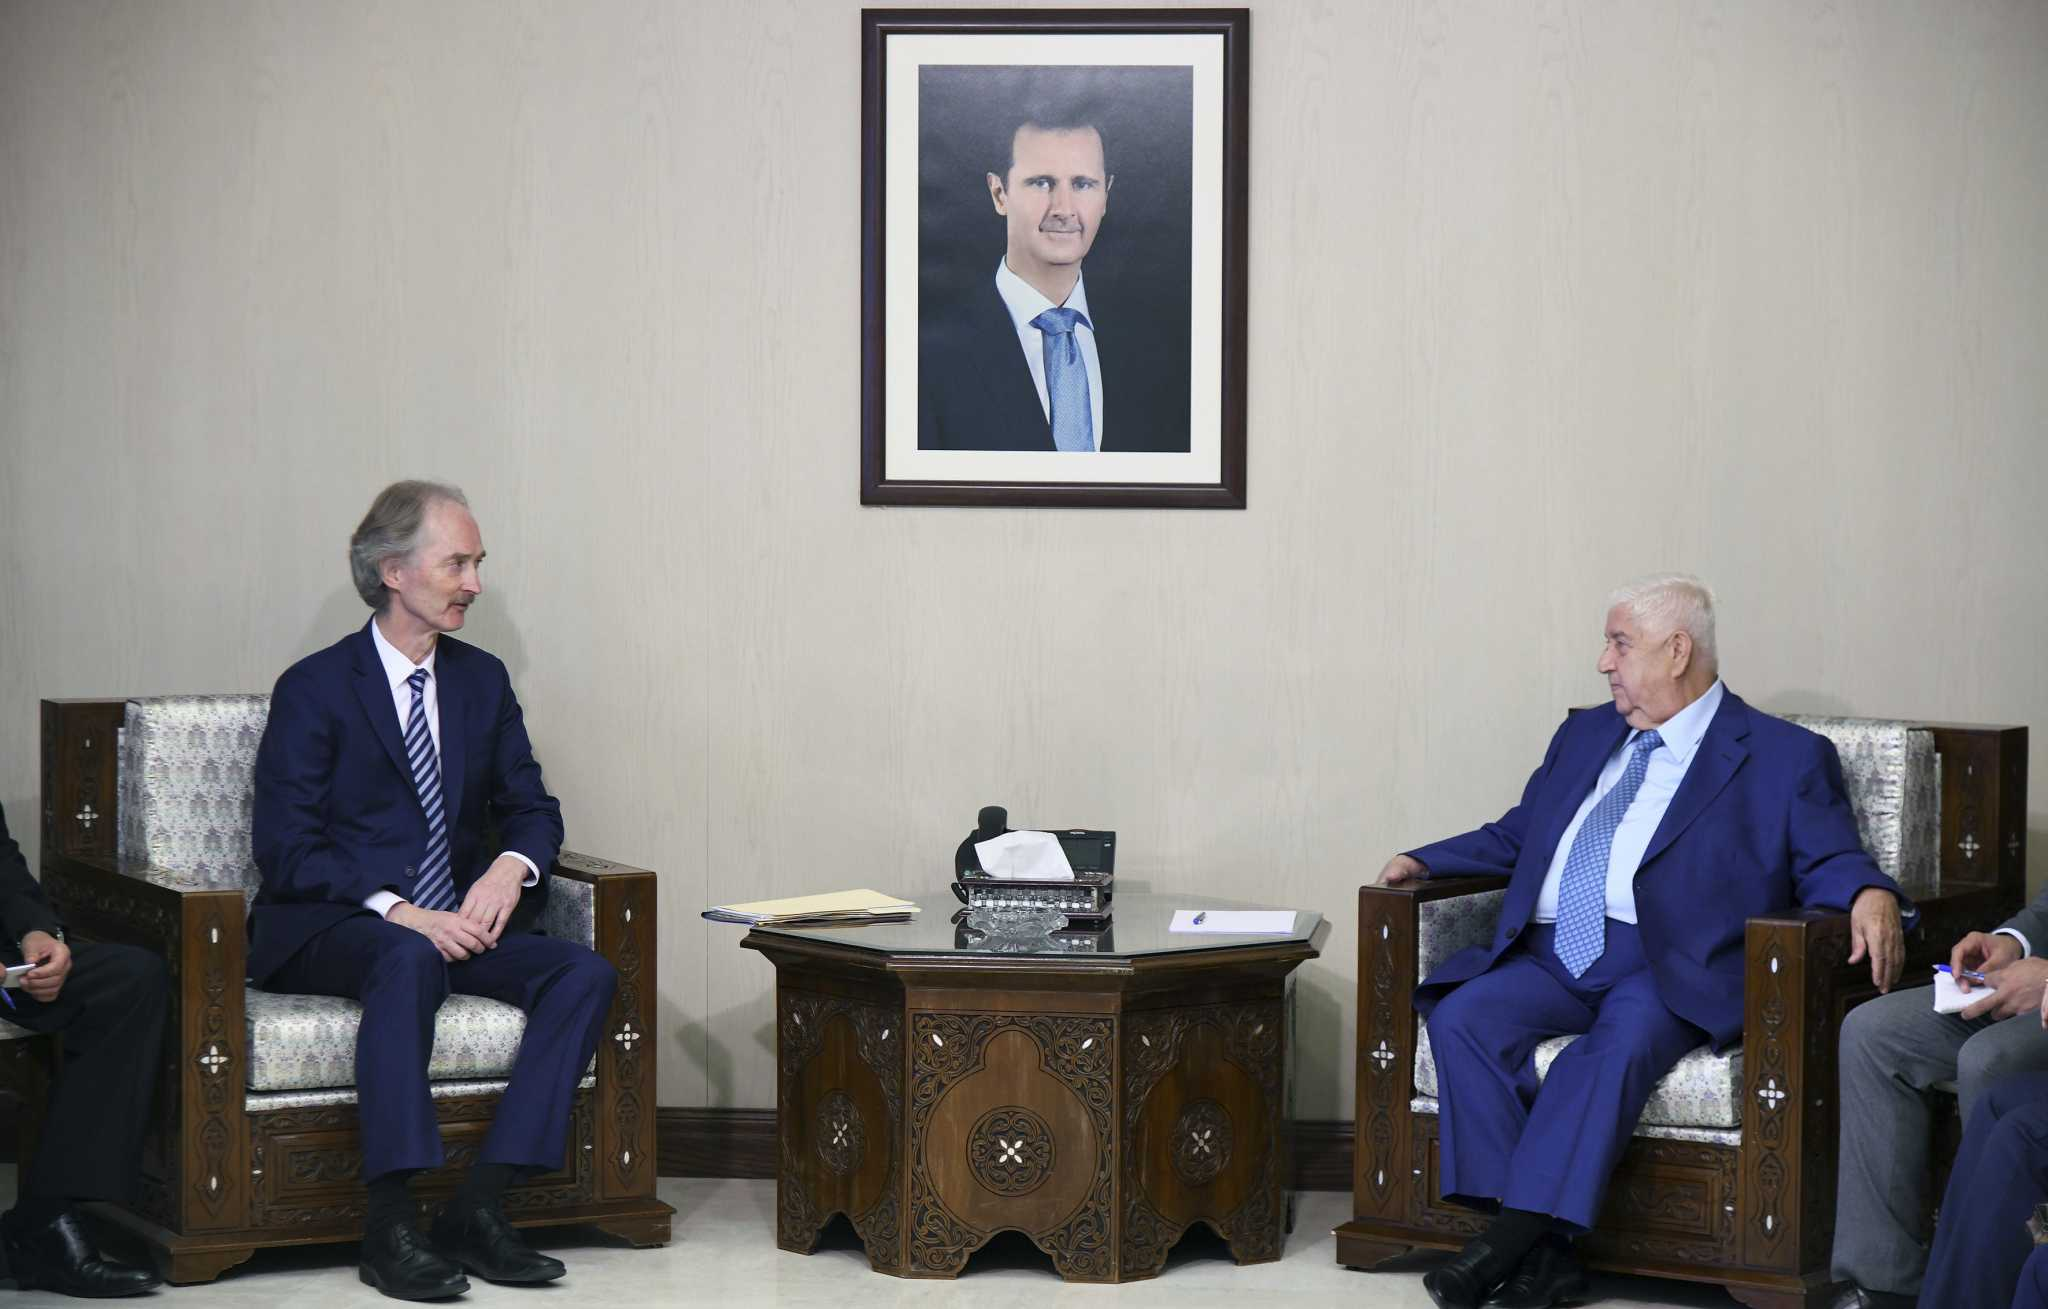 UN envoy to Syria Geir Pederson and Syrian Foreign Minister Walid al-Moallem in Damascus - September 2019 (Reuters)